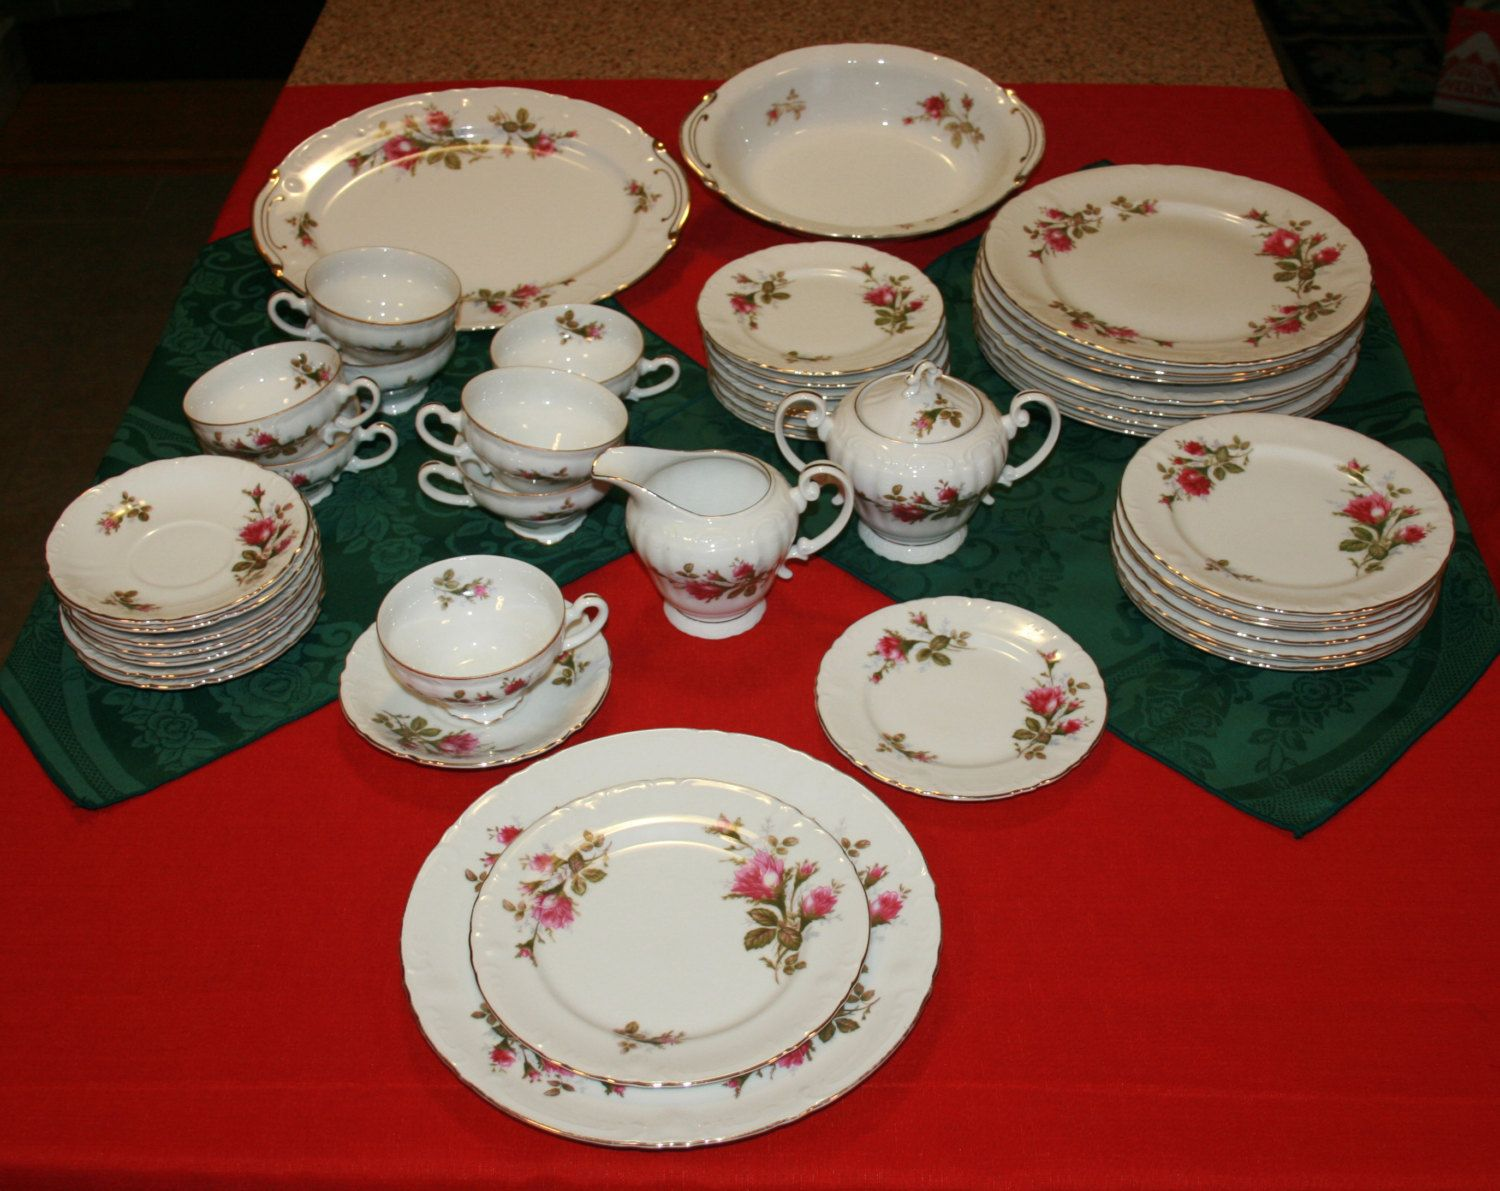 5 Piece Place Setting Floral Park China Moss Rose Pattern Japan 12 Available